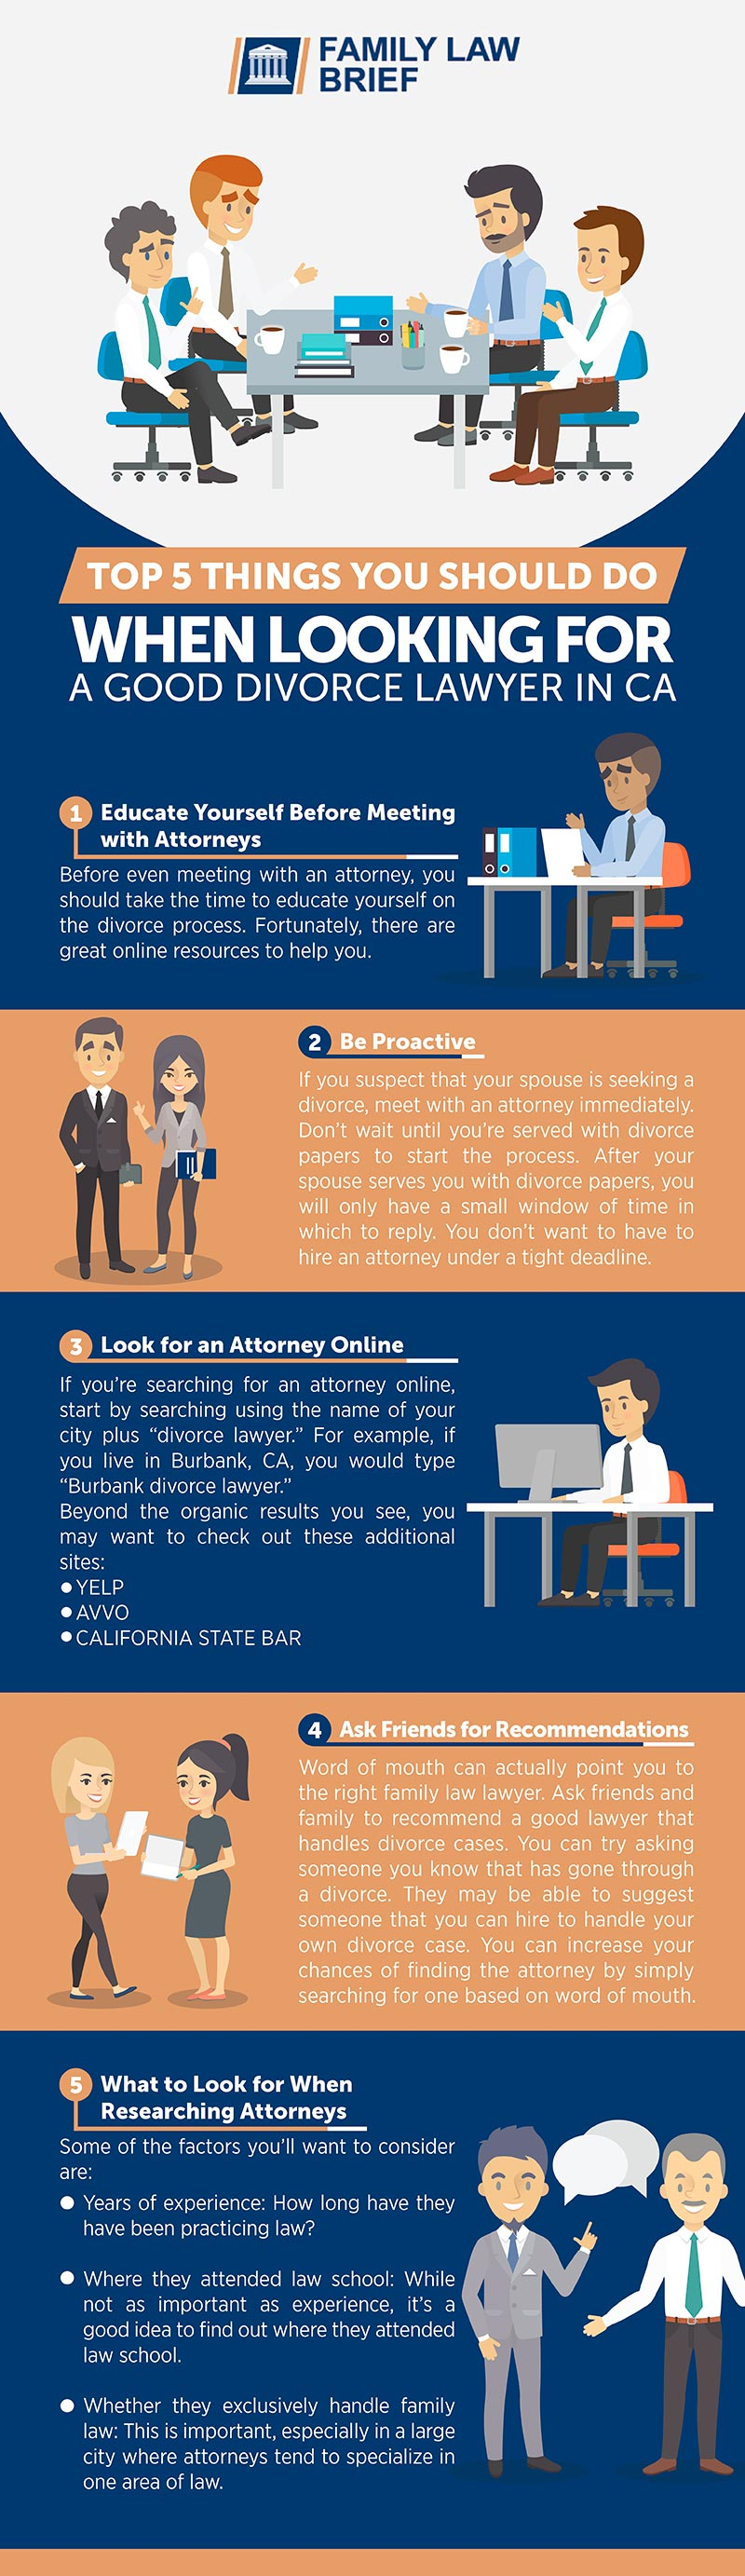 Top 5 Steps When Looking for a Good Divorce Lawyer